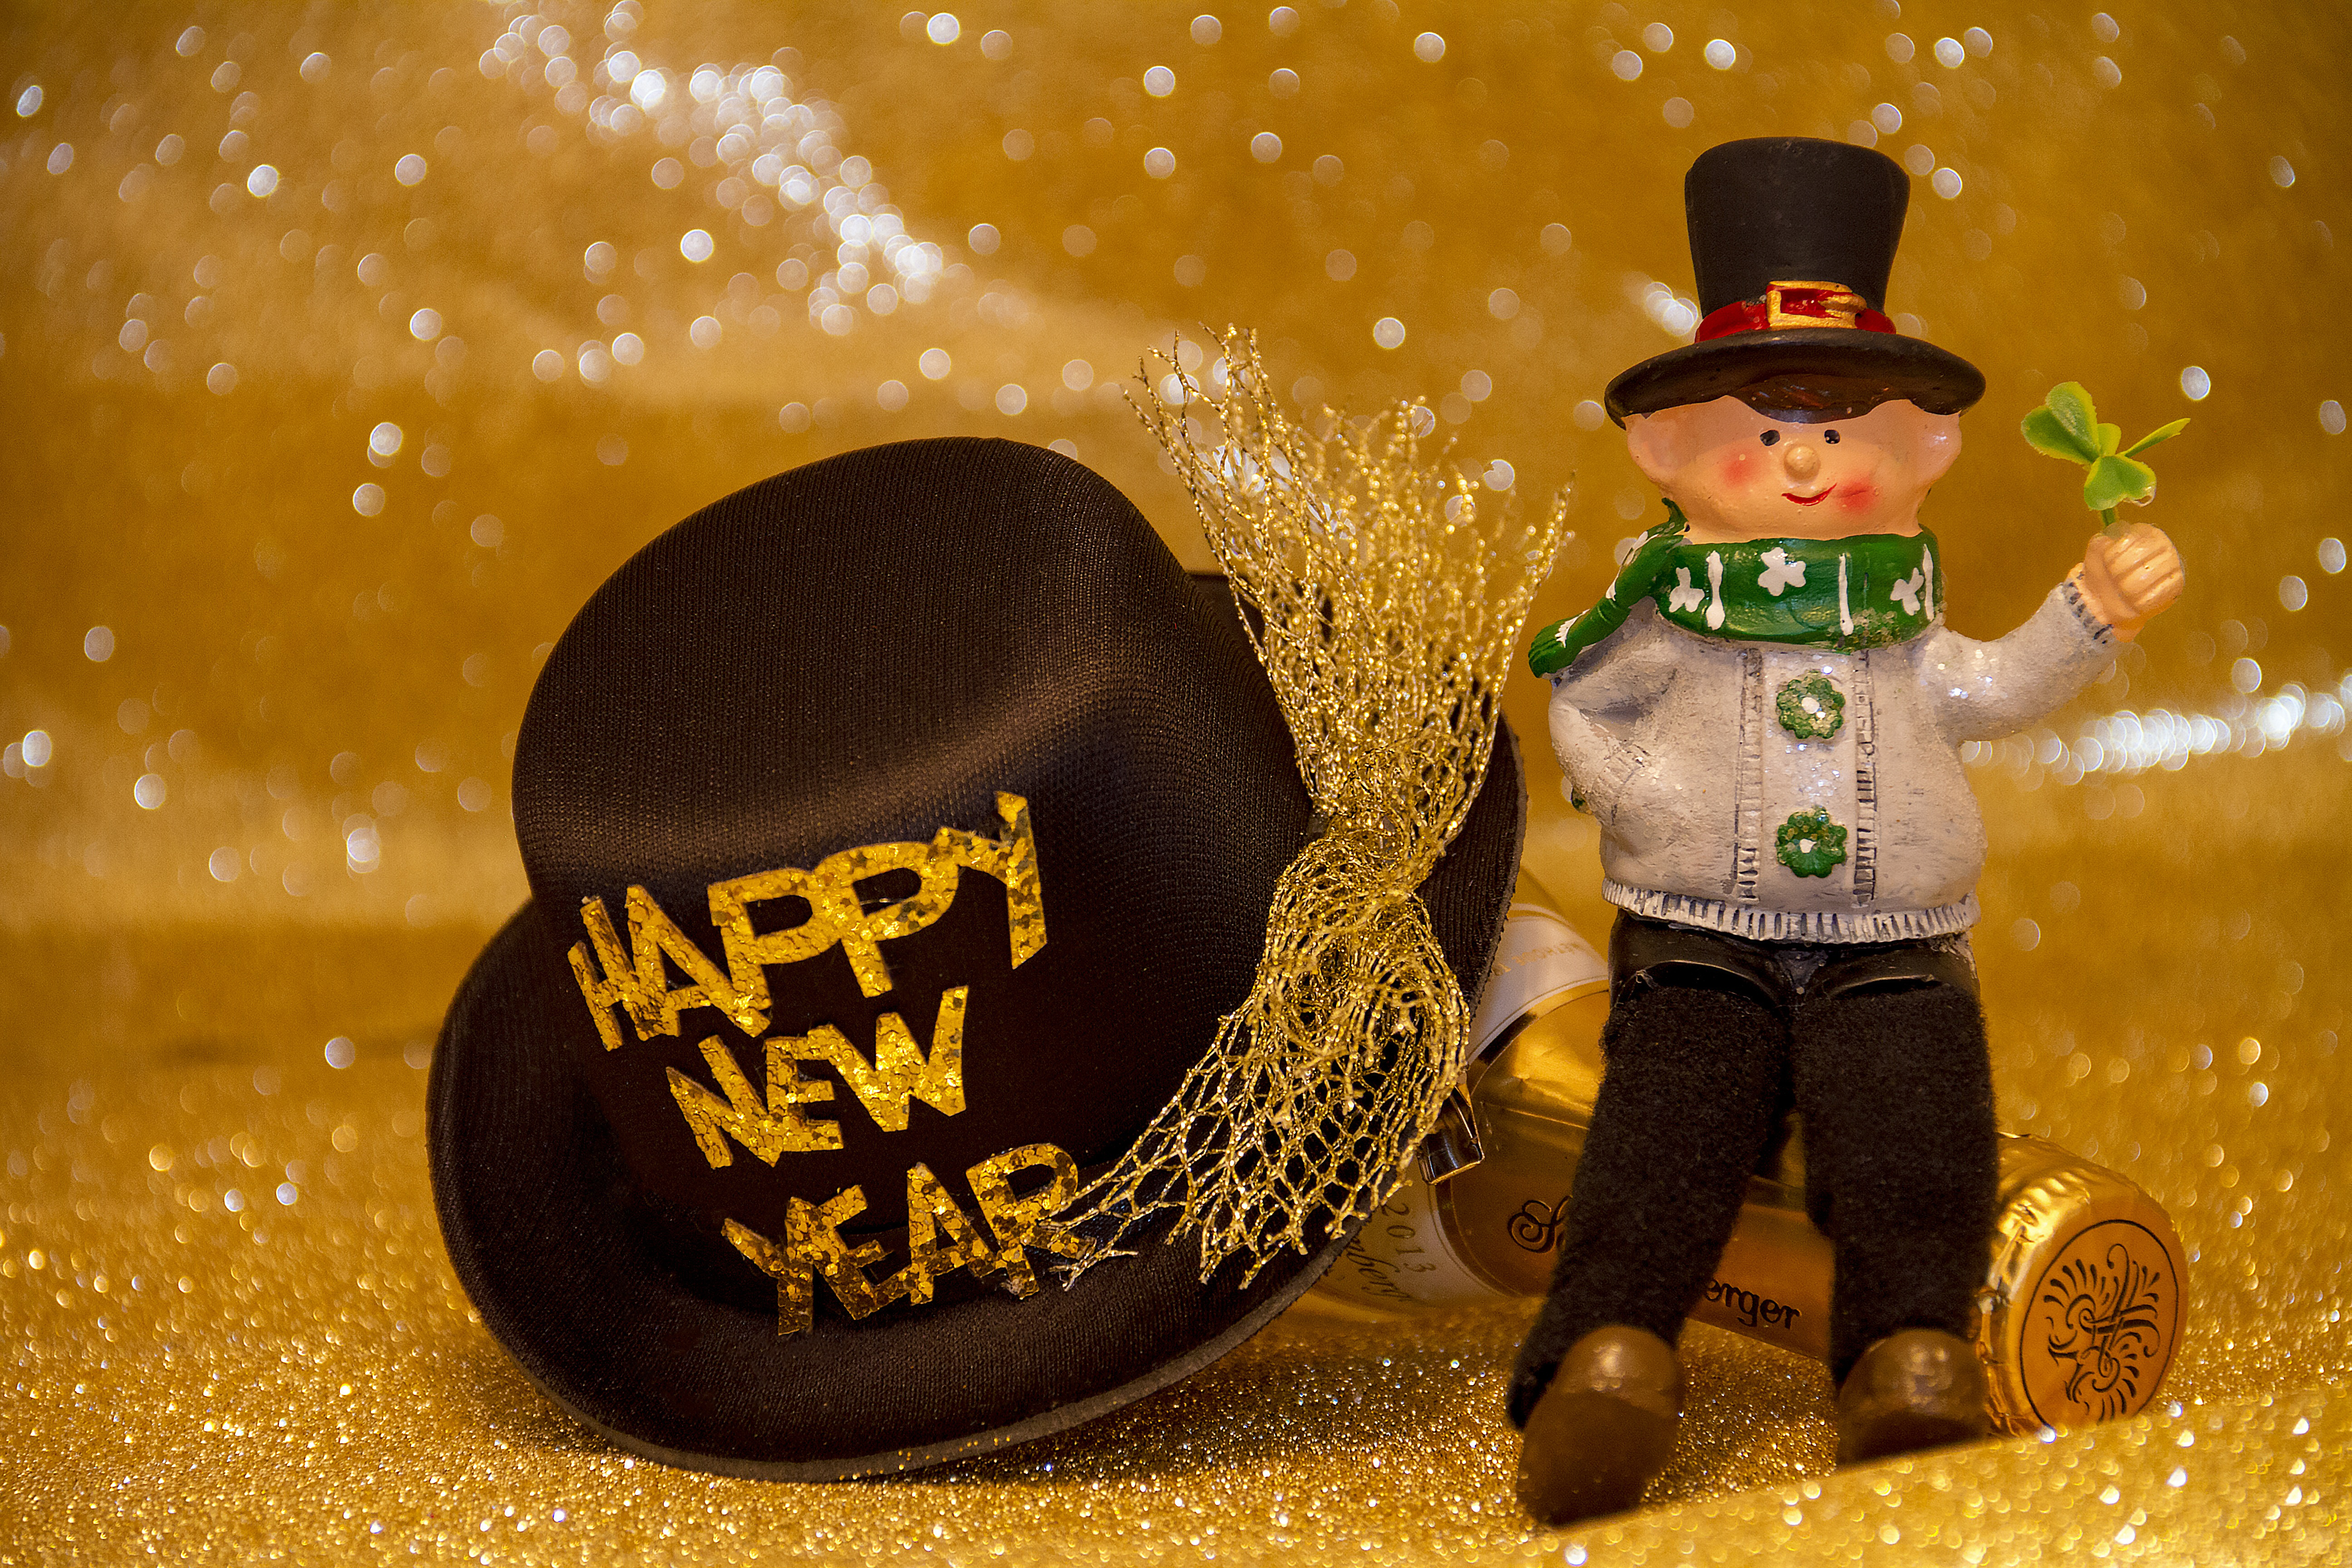 Happy new year, drink, bottle, cap, party